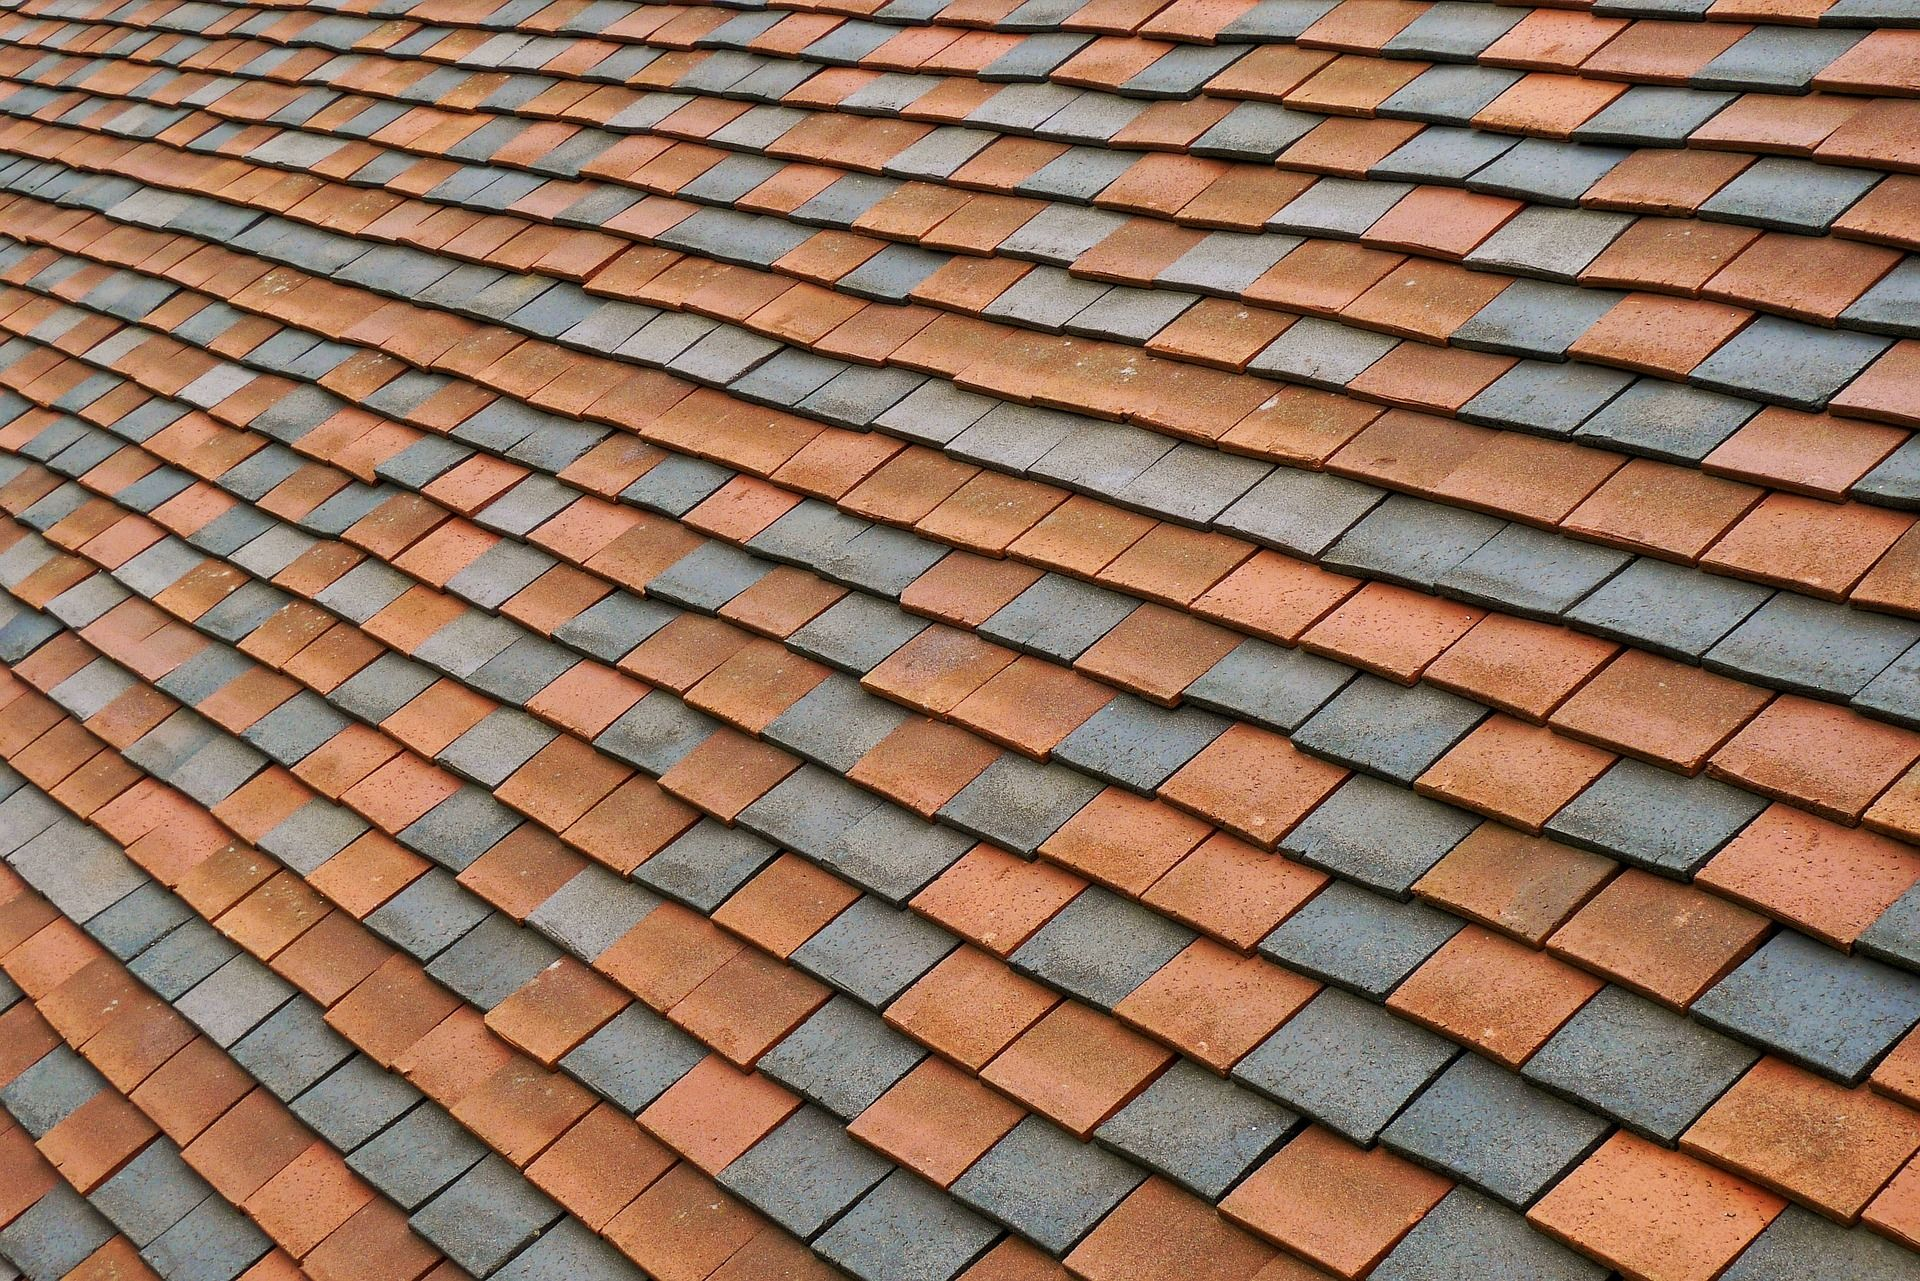 Provide By The Composite Hub Best Asphalt Roofing Shingles Manufacturers Suppliers In India At Affordable Price Asphalt Roofi Roof Repair Cool Roof Roofing